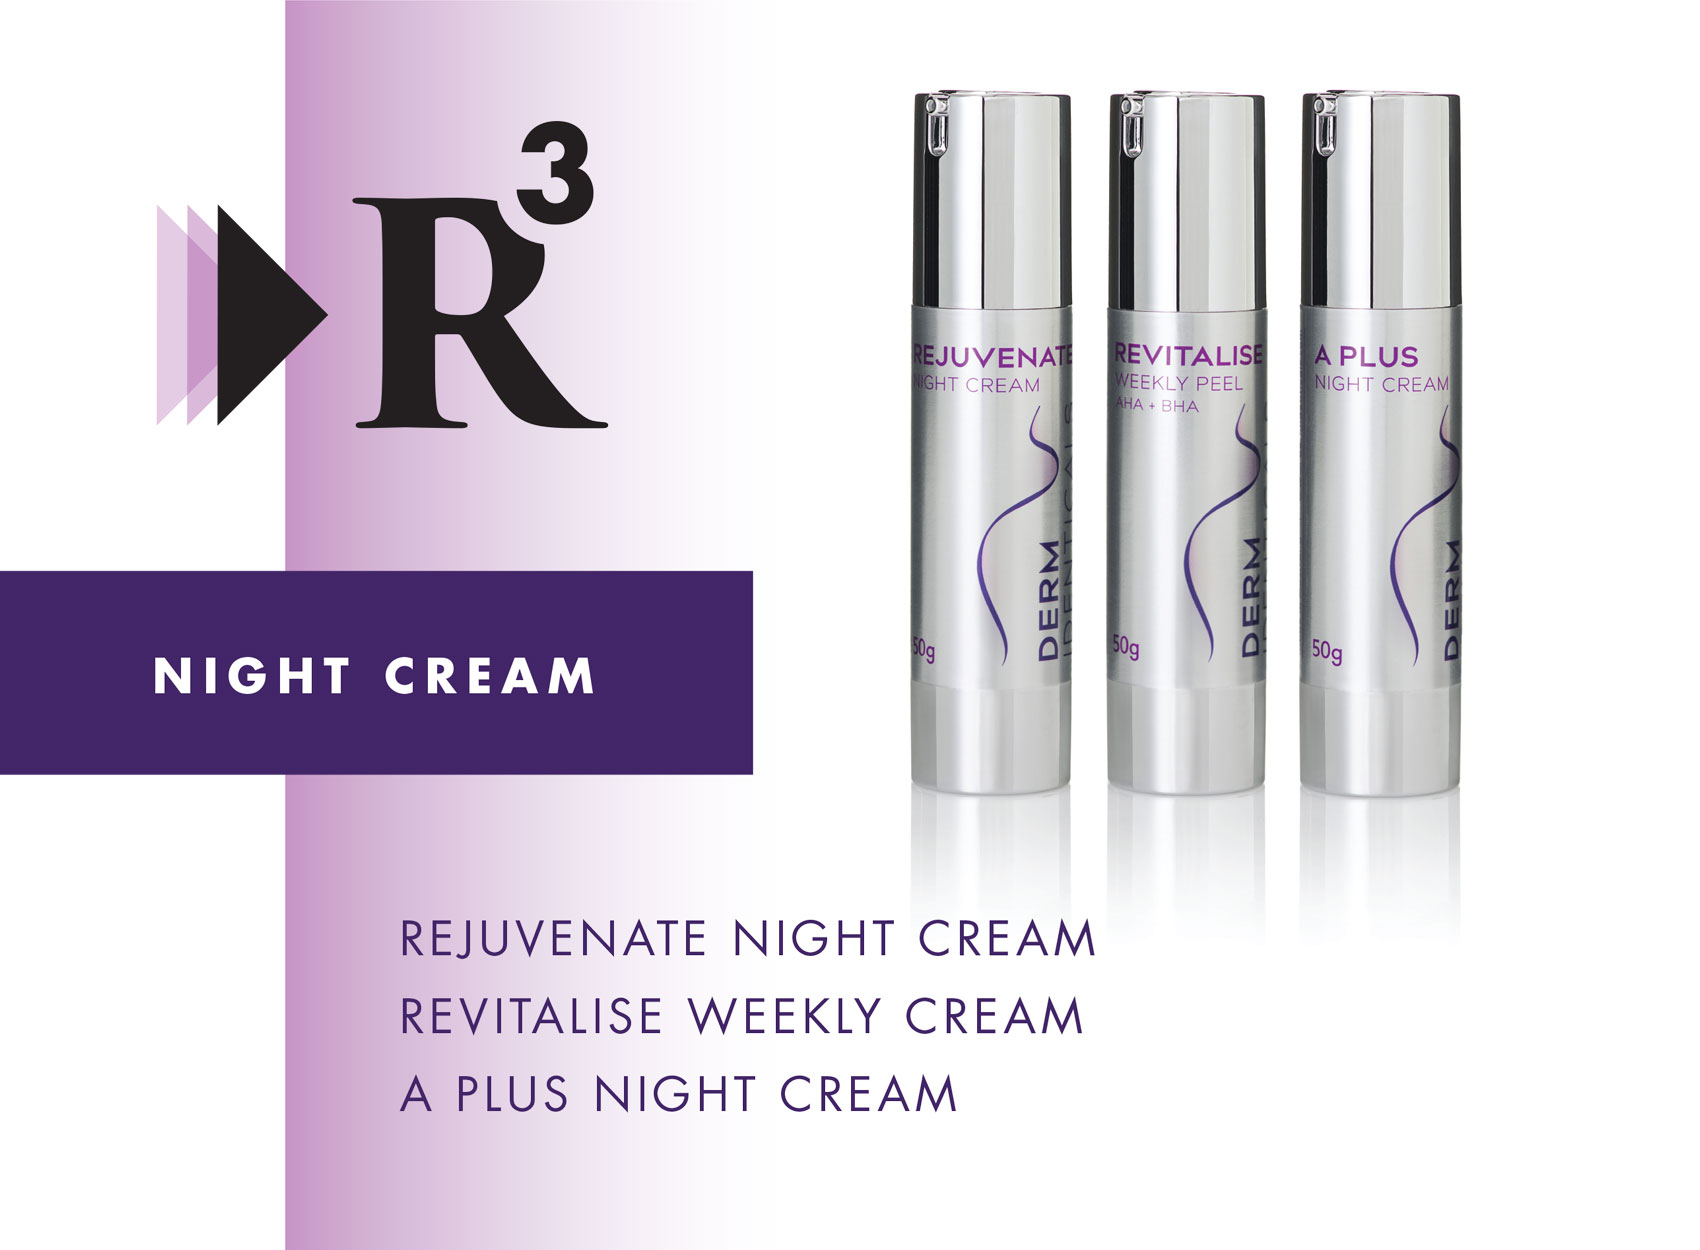 R3 Night Cream